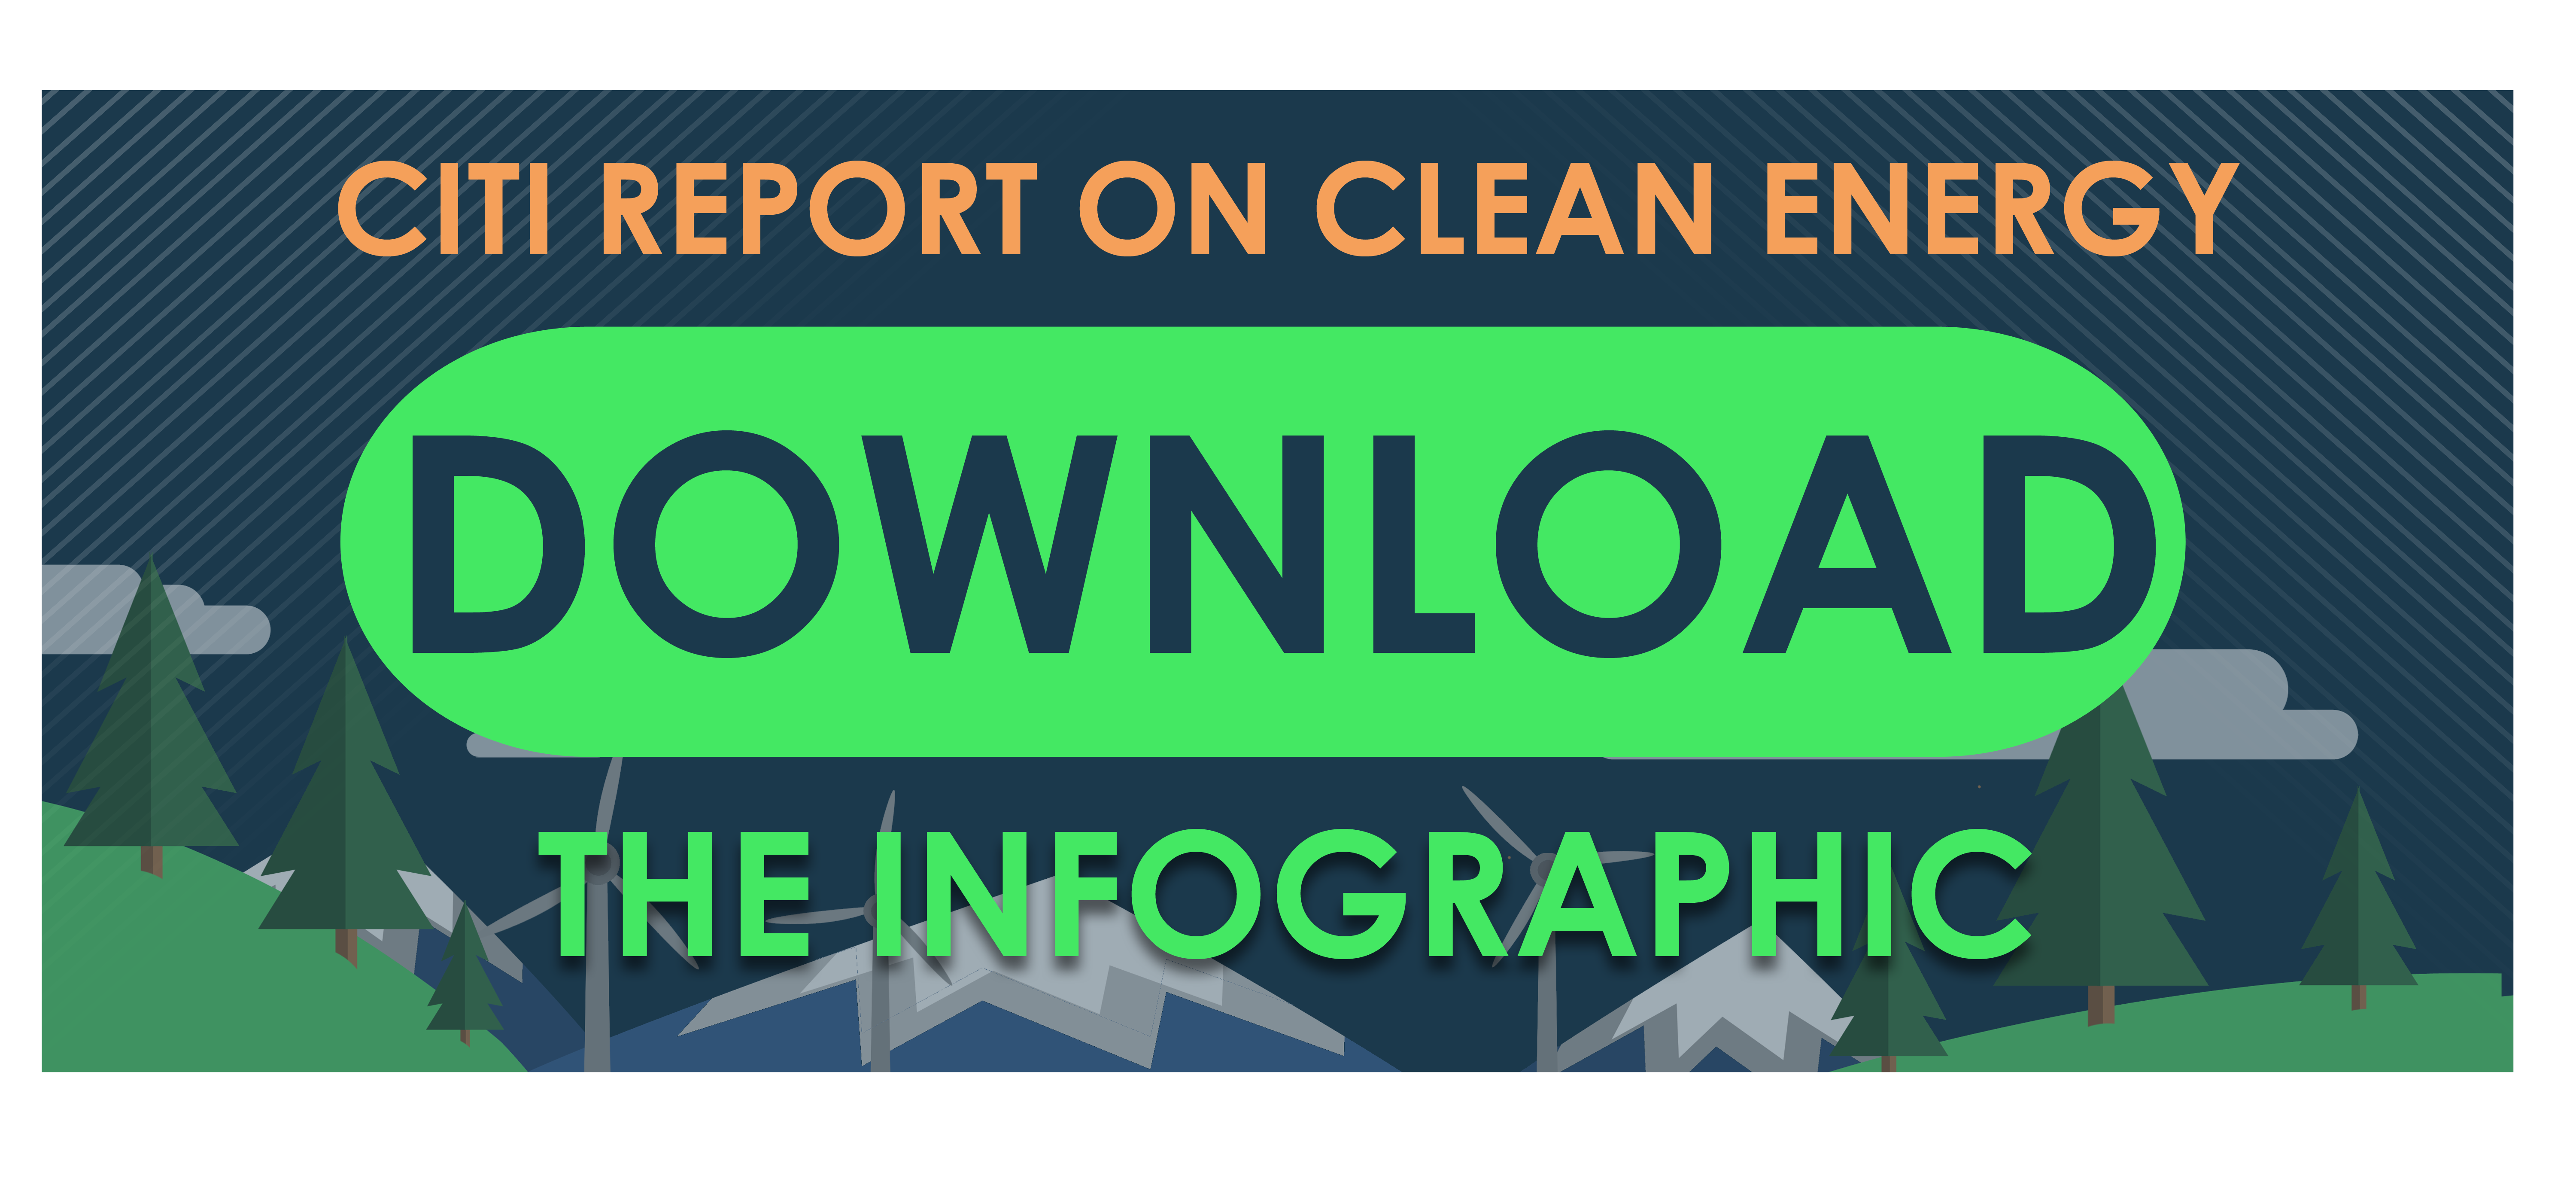 Get the Citi Report on Clean Energy Infographic.